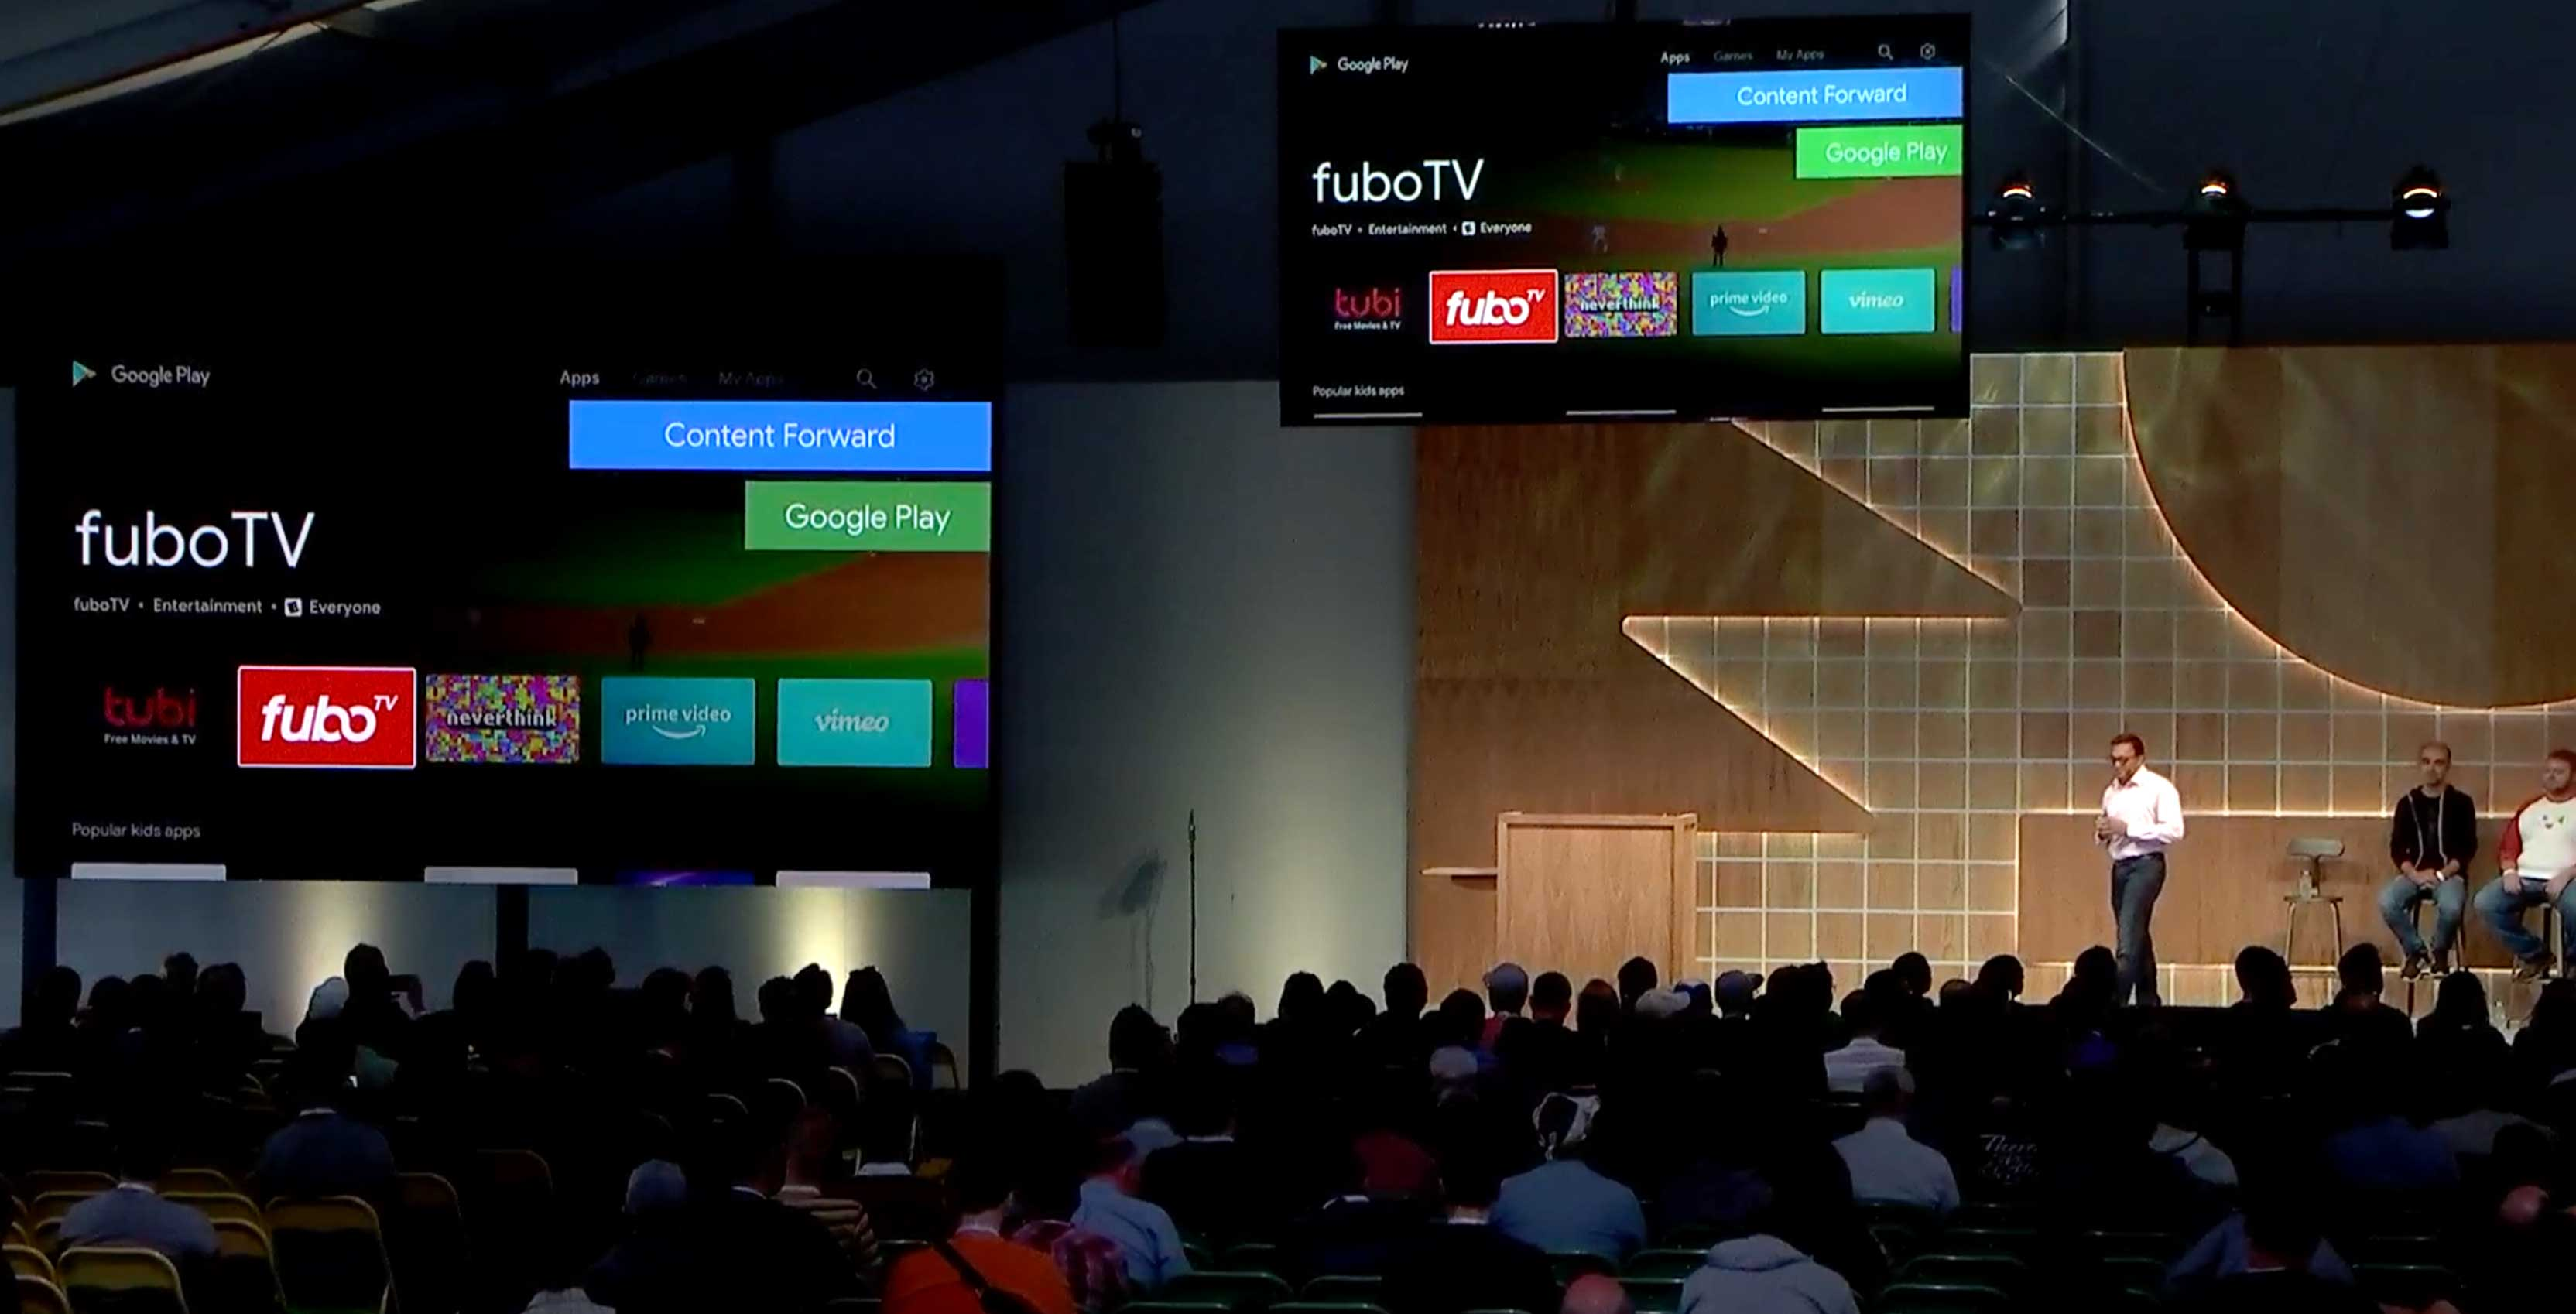 Android TV to get faster OS updates in the future, plus more